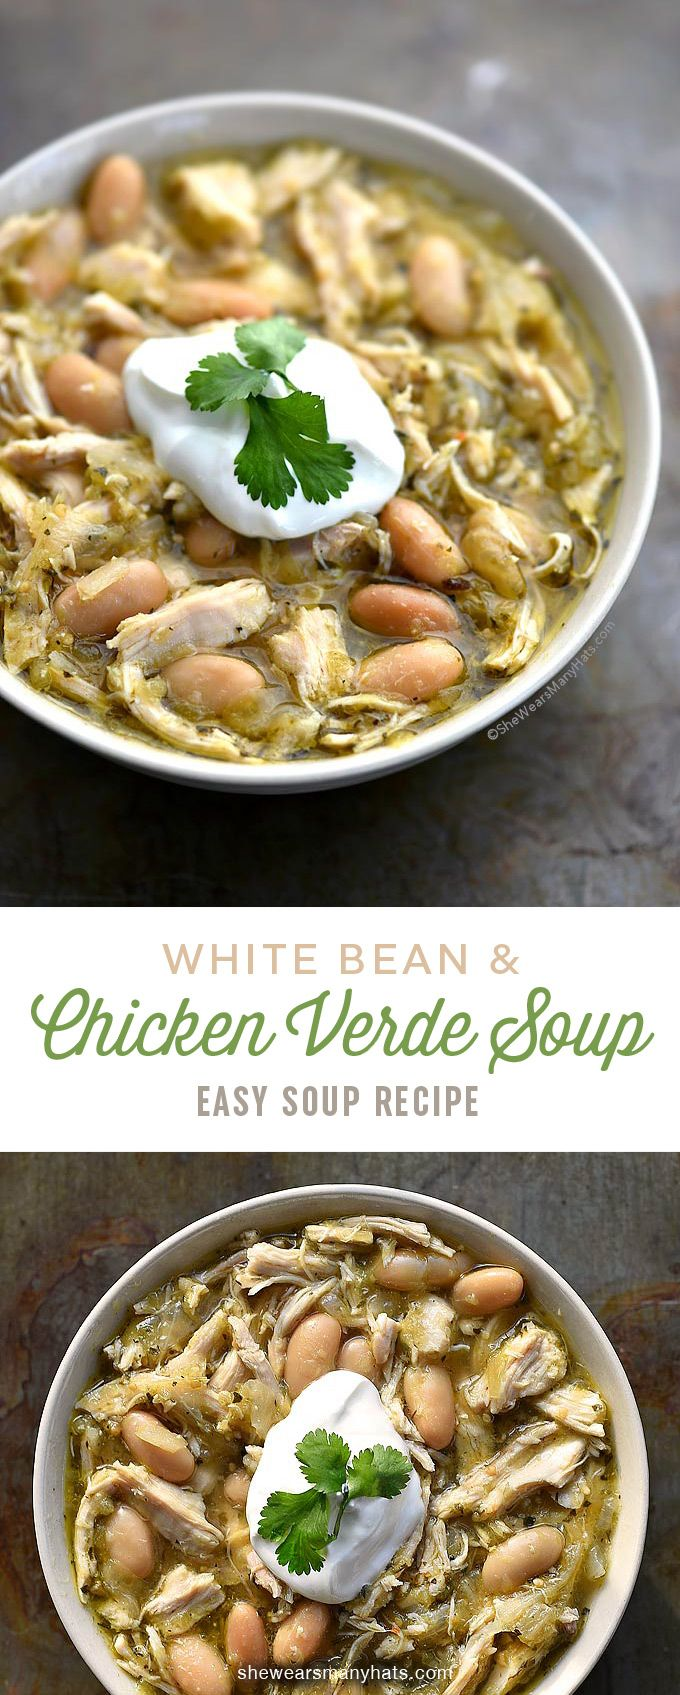 White Bean Chicken Verde Soup Recipe This tasty soup recipe is perfect for a serving a crowd and so easy to make. | shewearsmanyhats.com